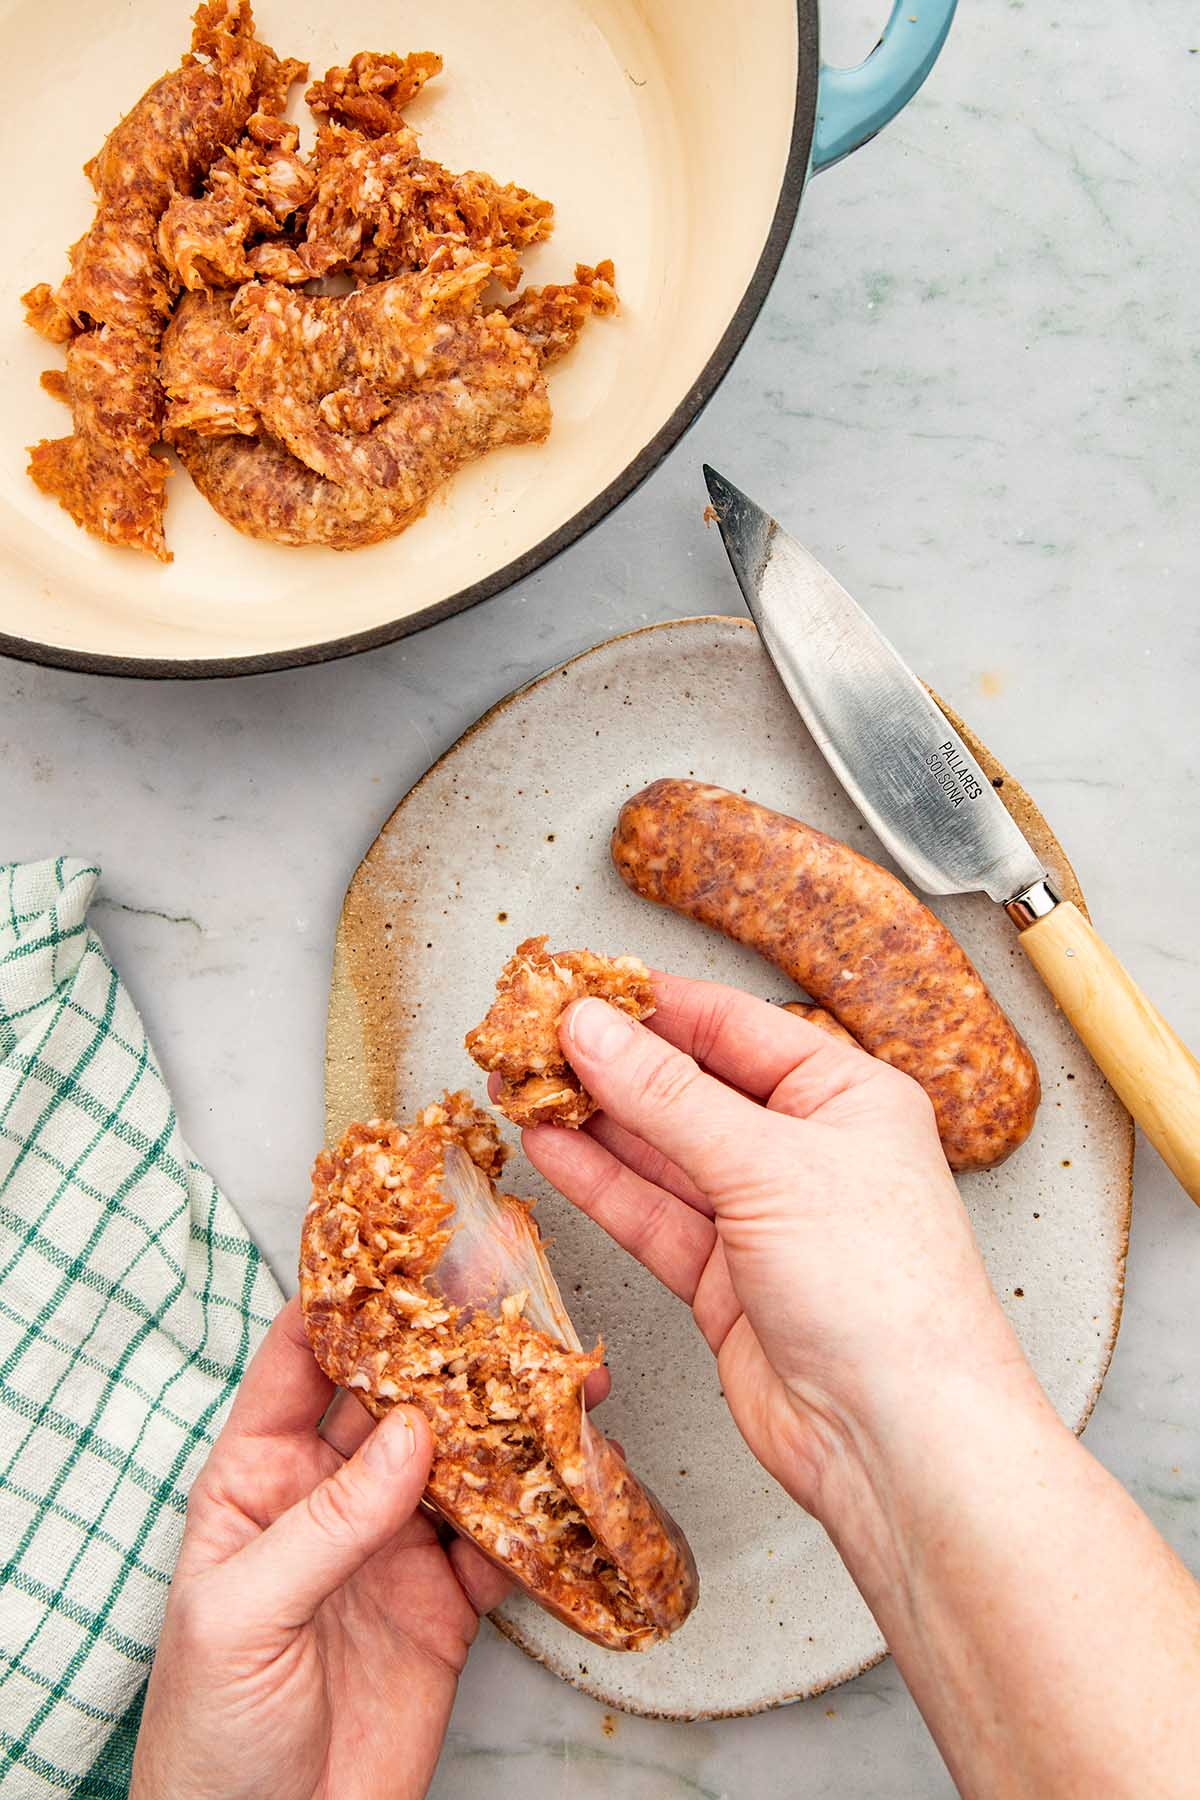 A hand removing sausage meat from a sausage casing.